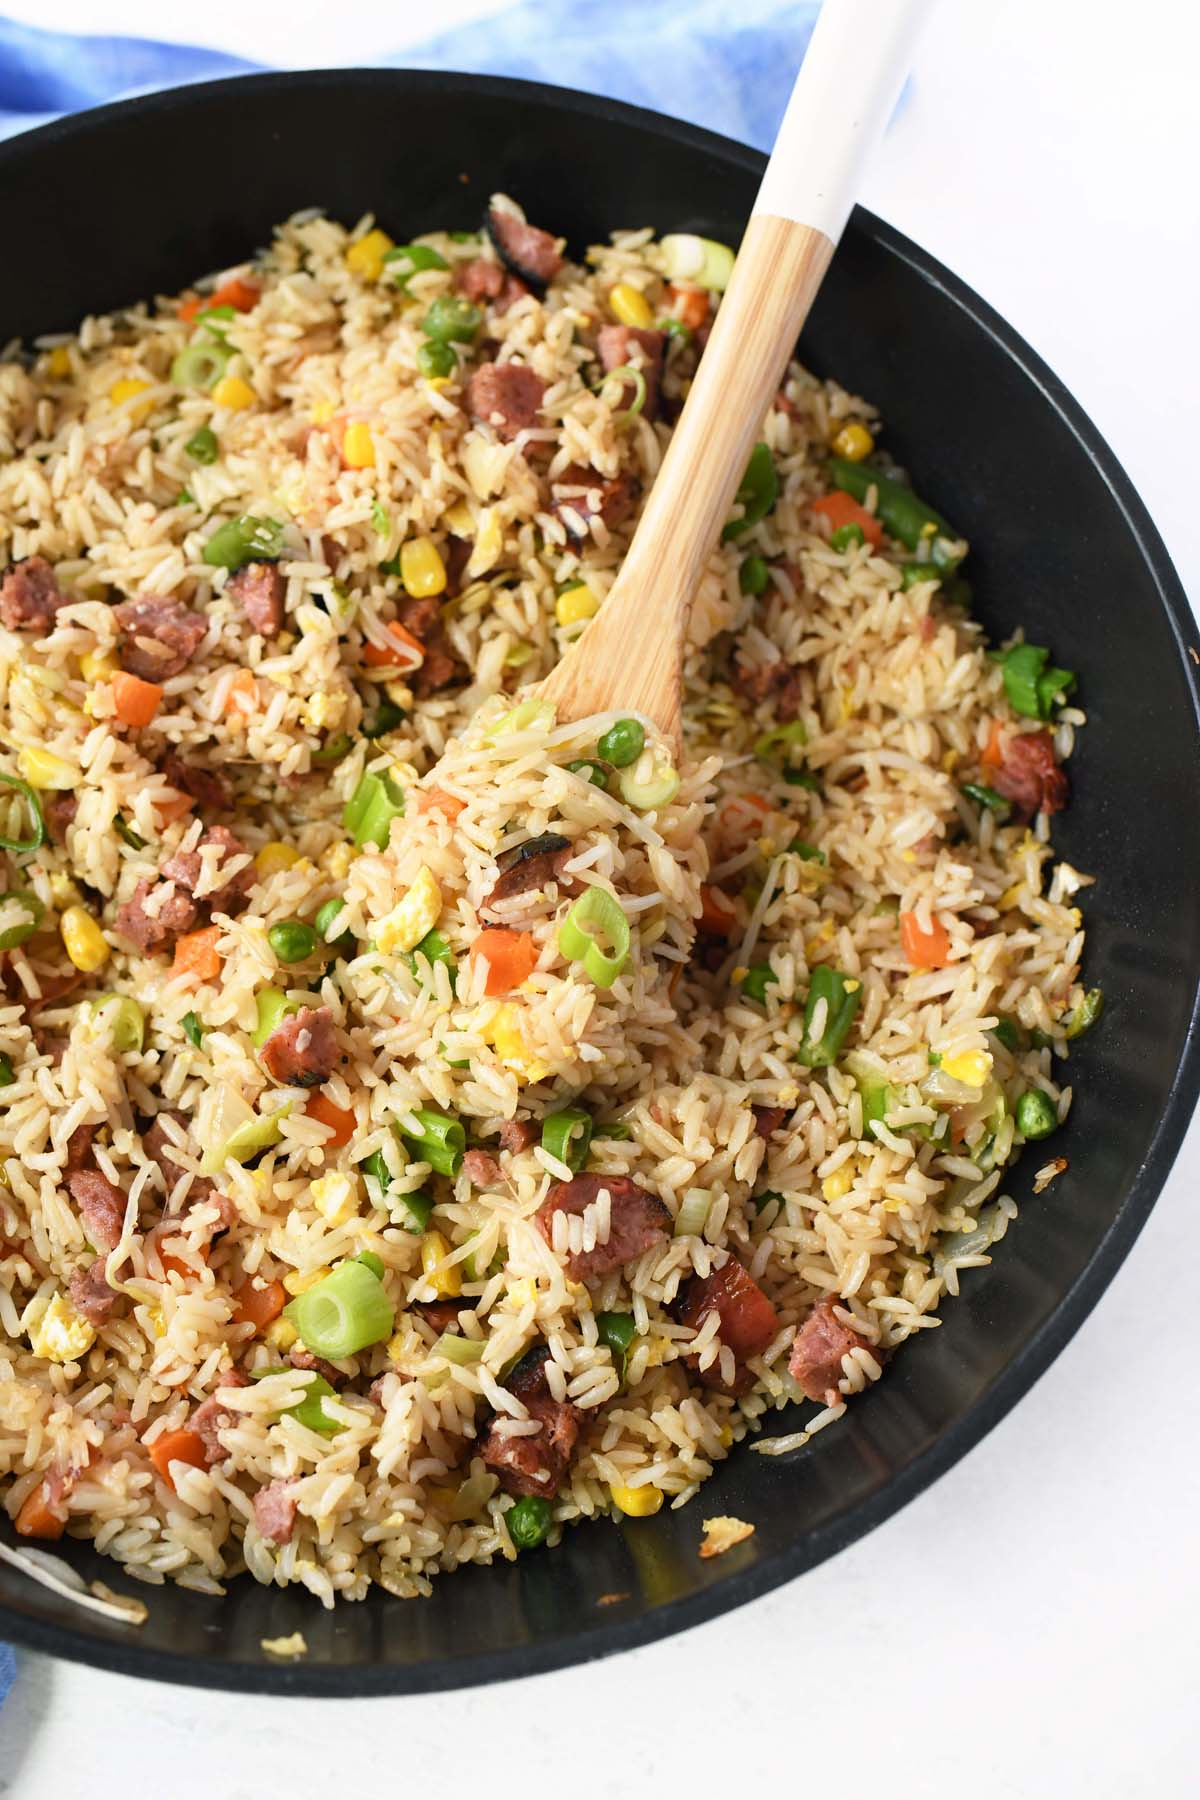 Chinese Fried Rice in a black wok with a wooden spoon.